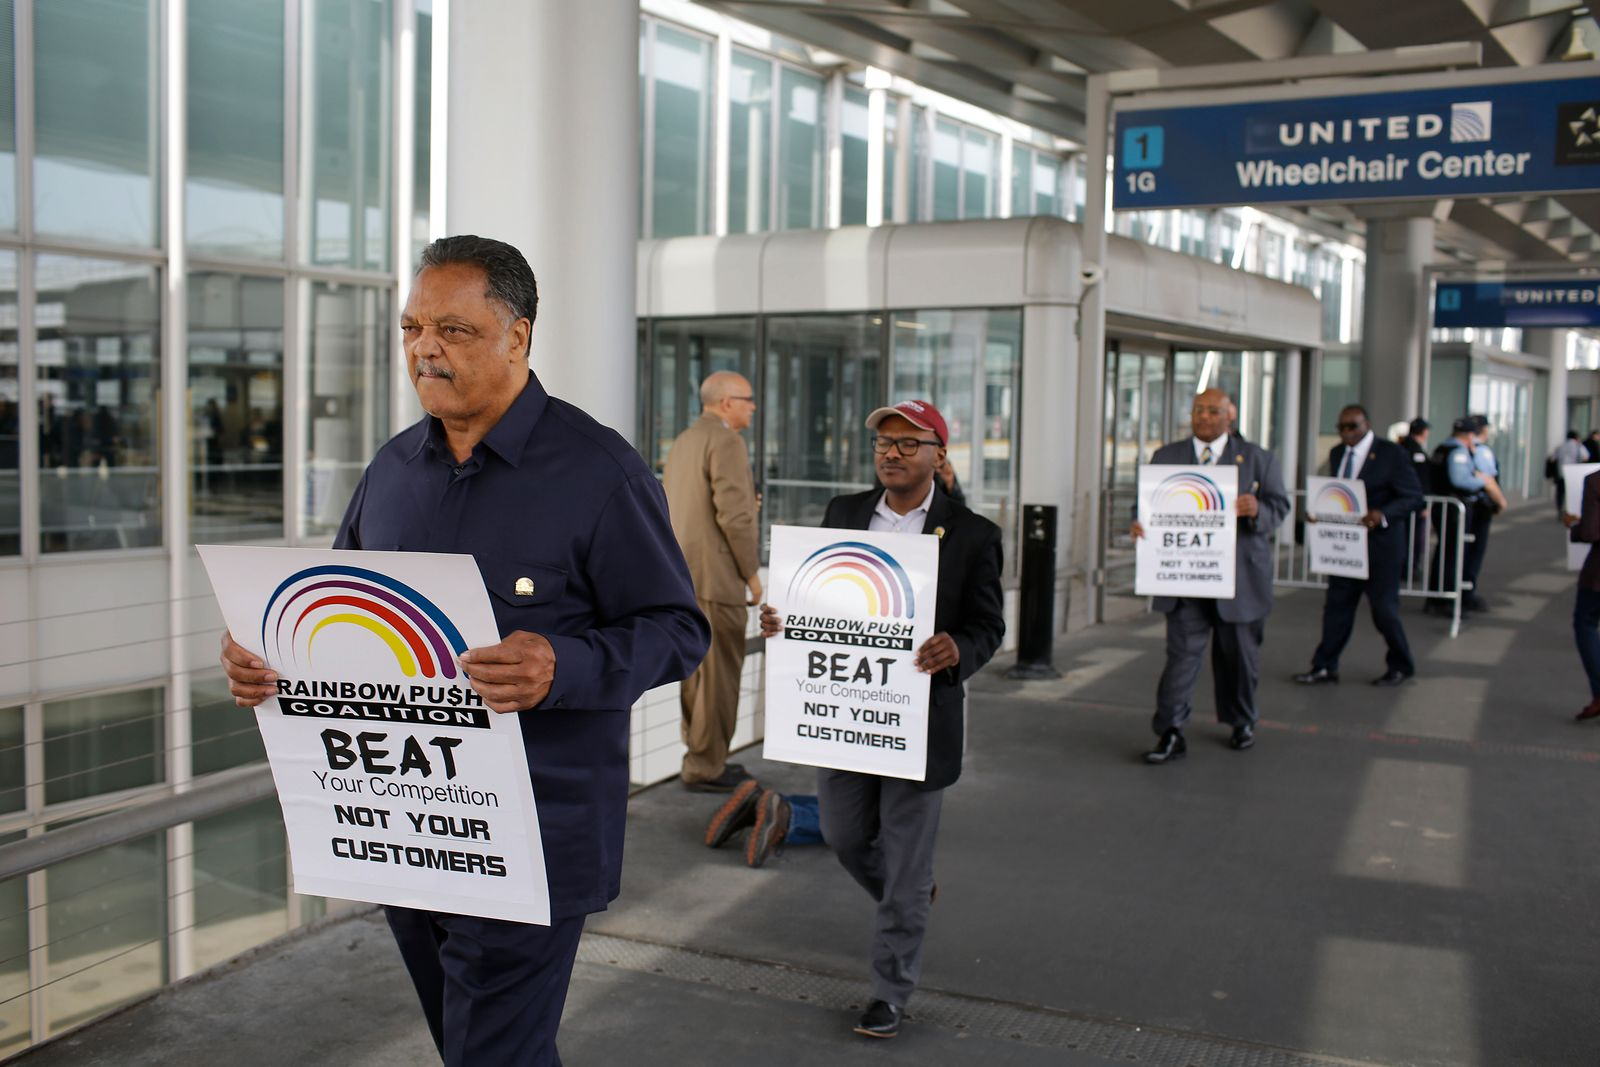 Proteste gegen United Airlines am Chicago Airport